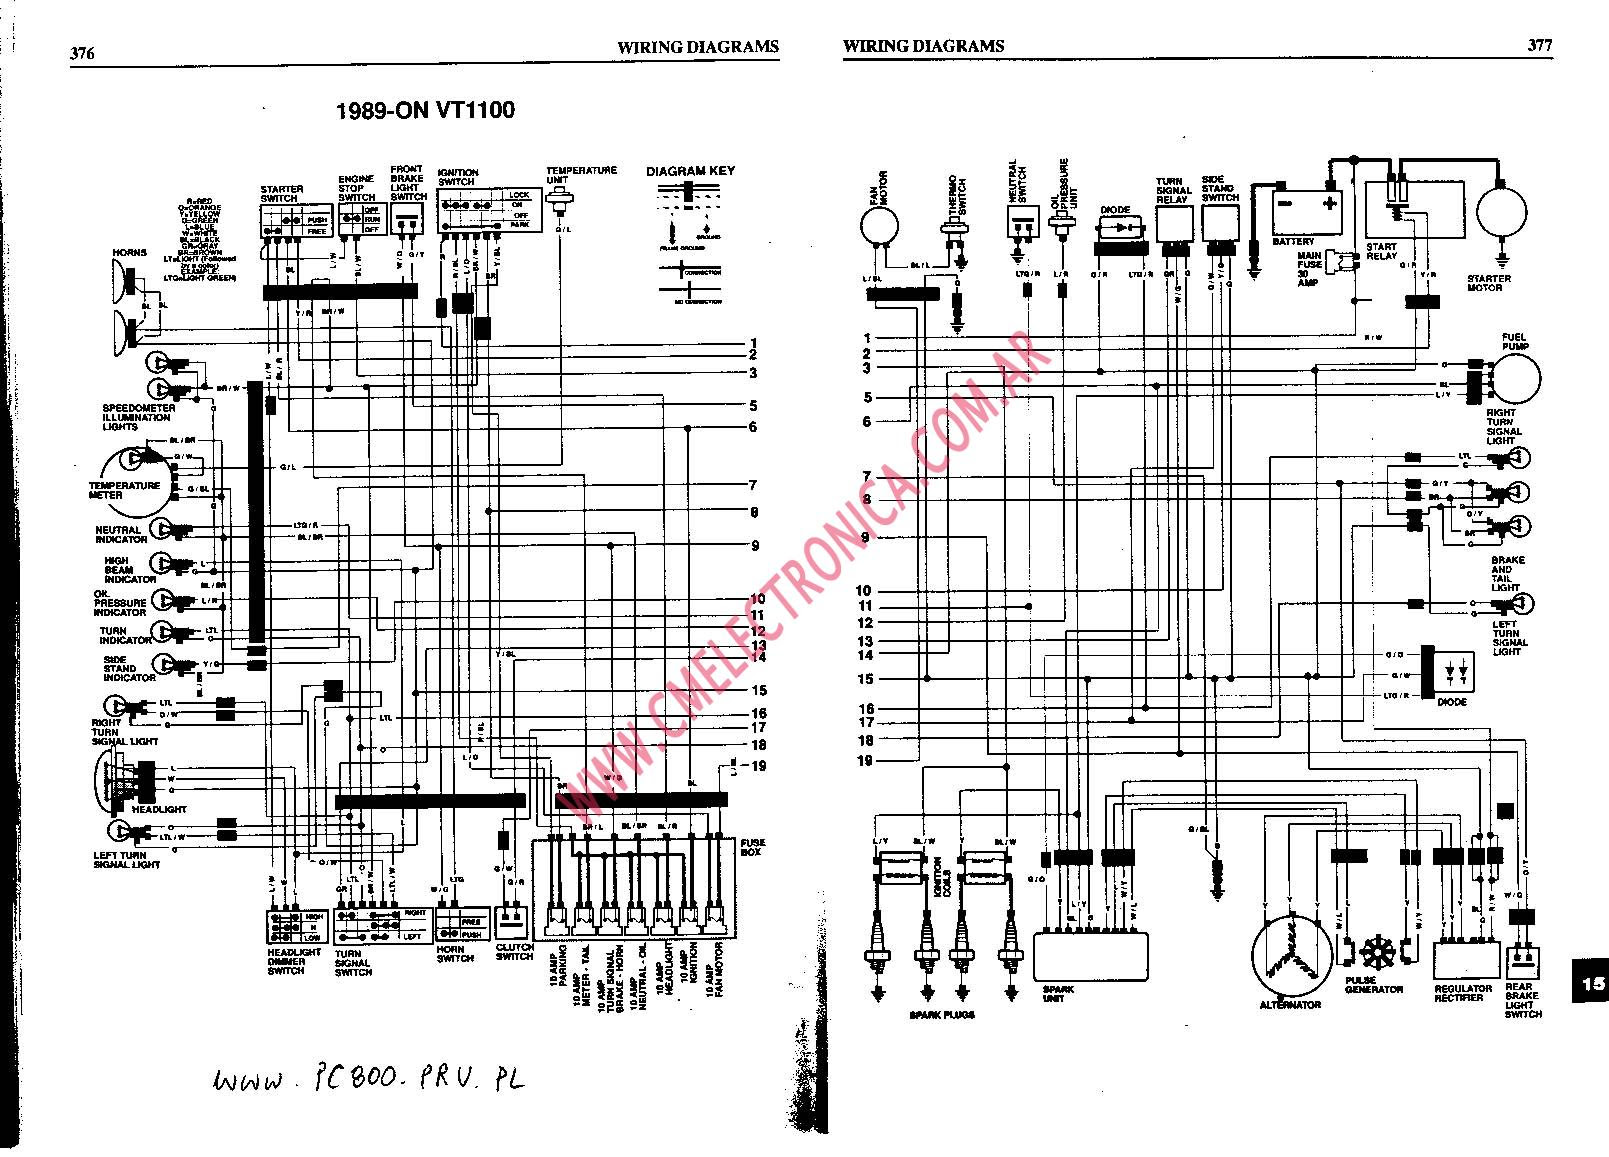 1986 Honda Vt1100 Wiring Diagram Wiring Diagram United A United A Maceratadoc It